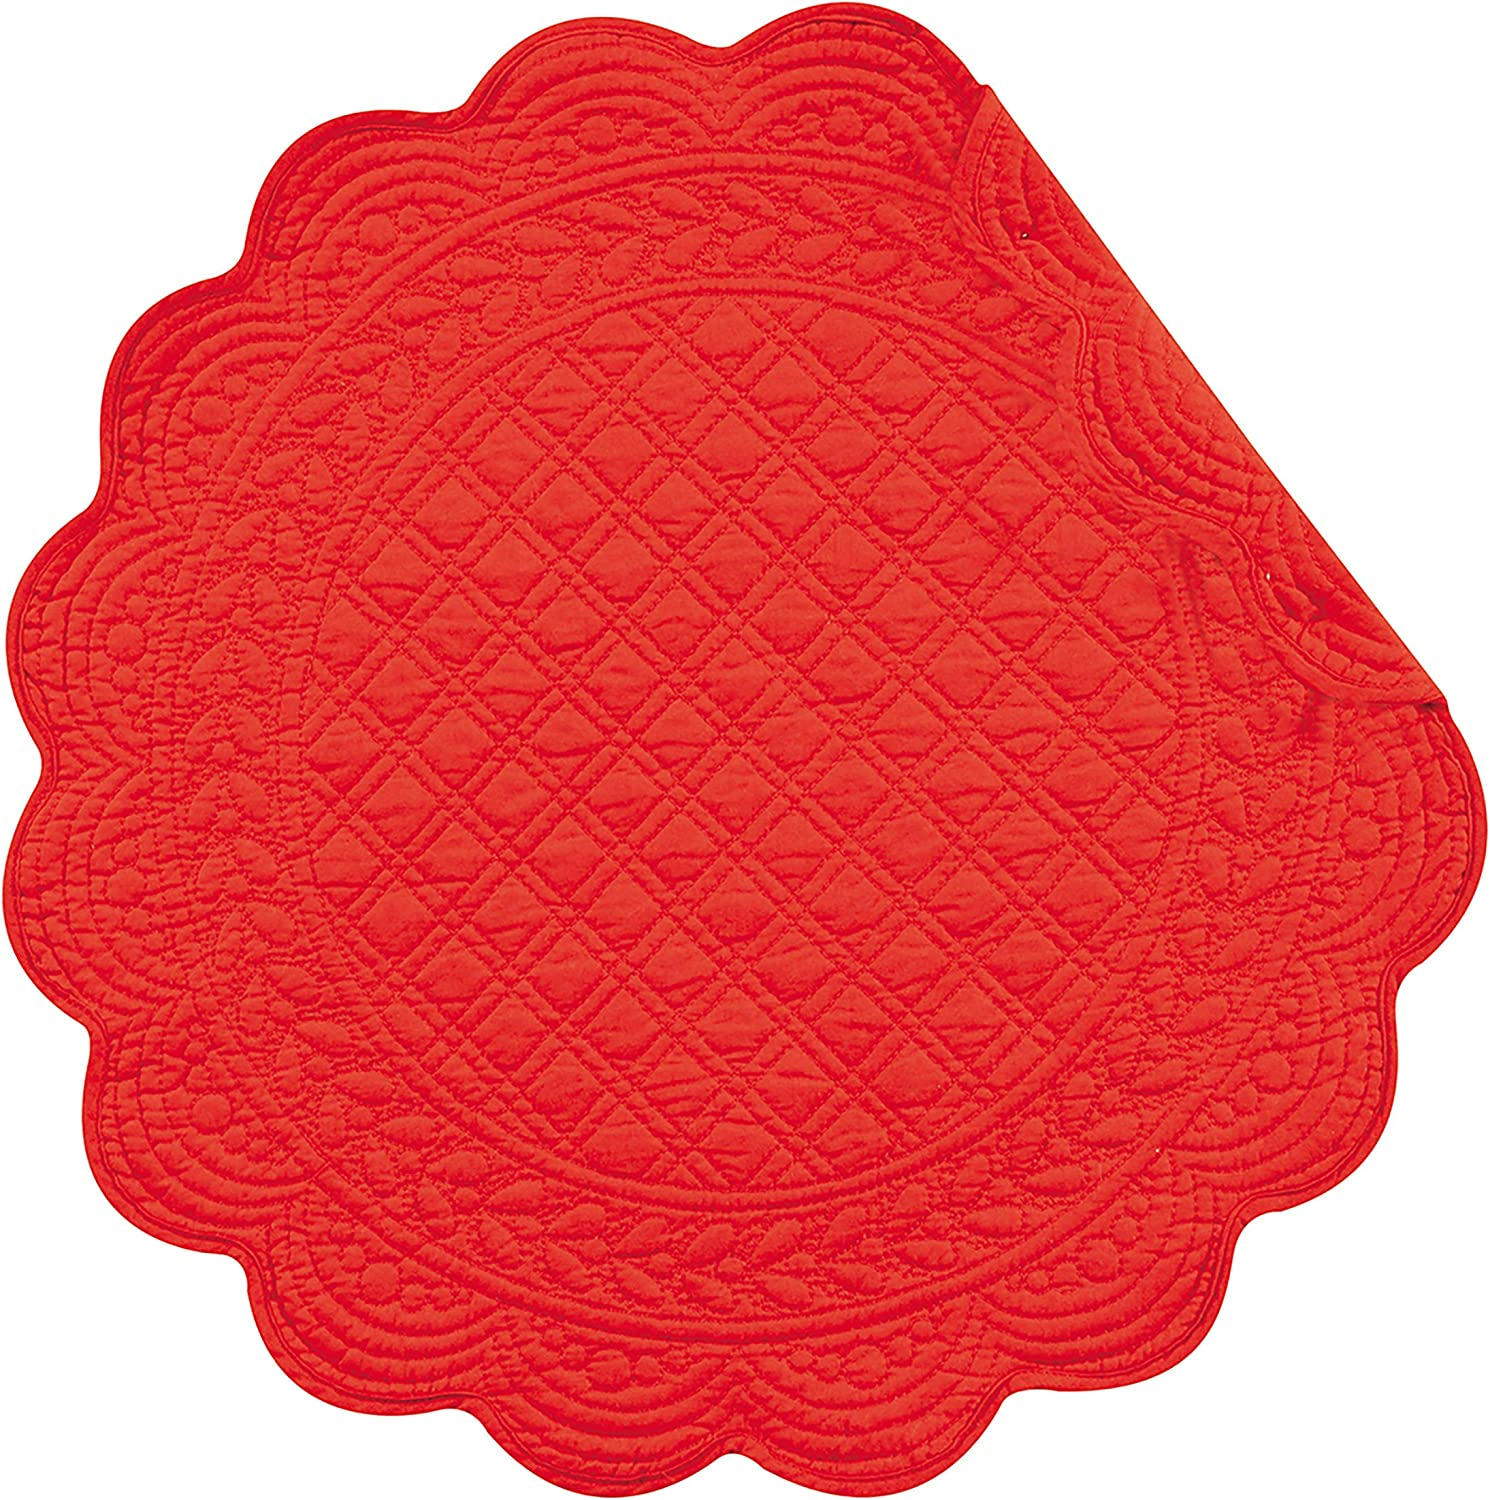 C&F Home Red Cotton Quilted Round Patriotic 4th of July Memorial Day Labor Day Americana Liberty Cotton Placemat Set of 6 Round Placemat Set of 6 Red